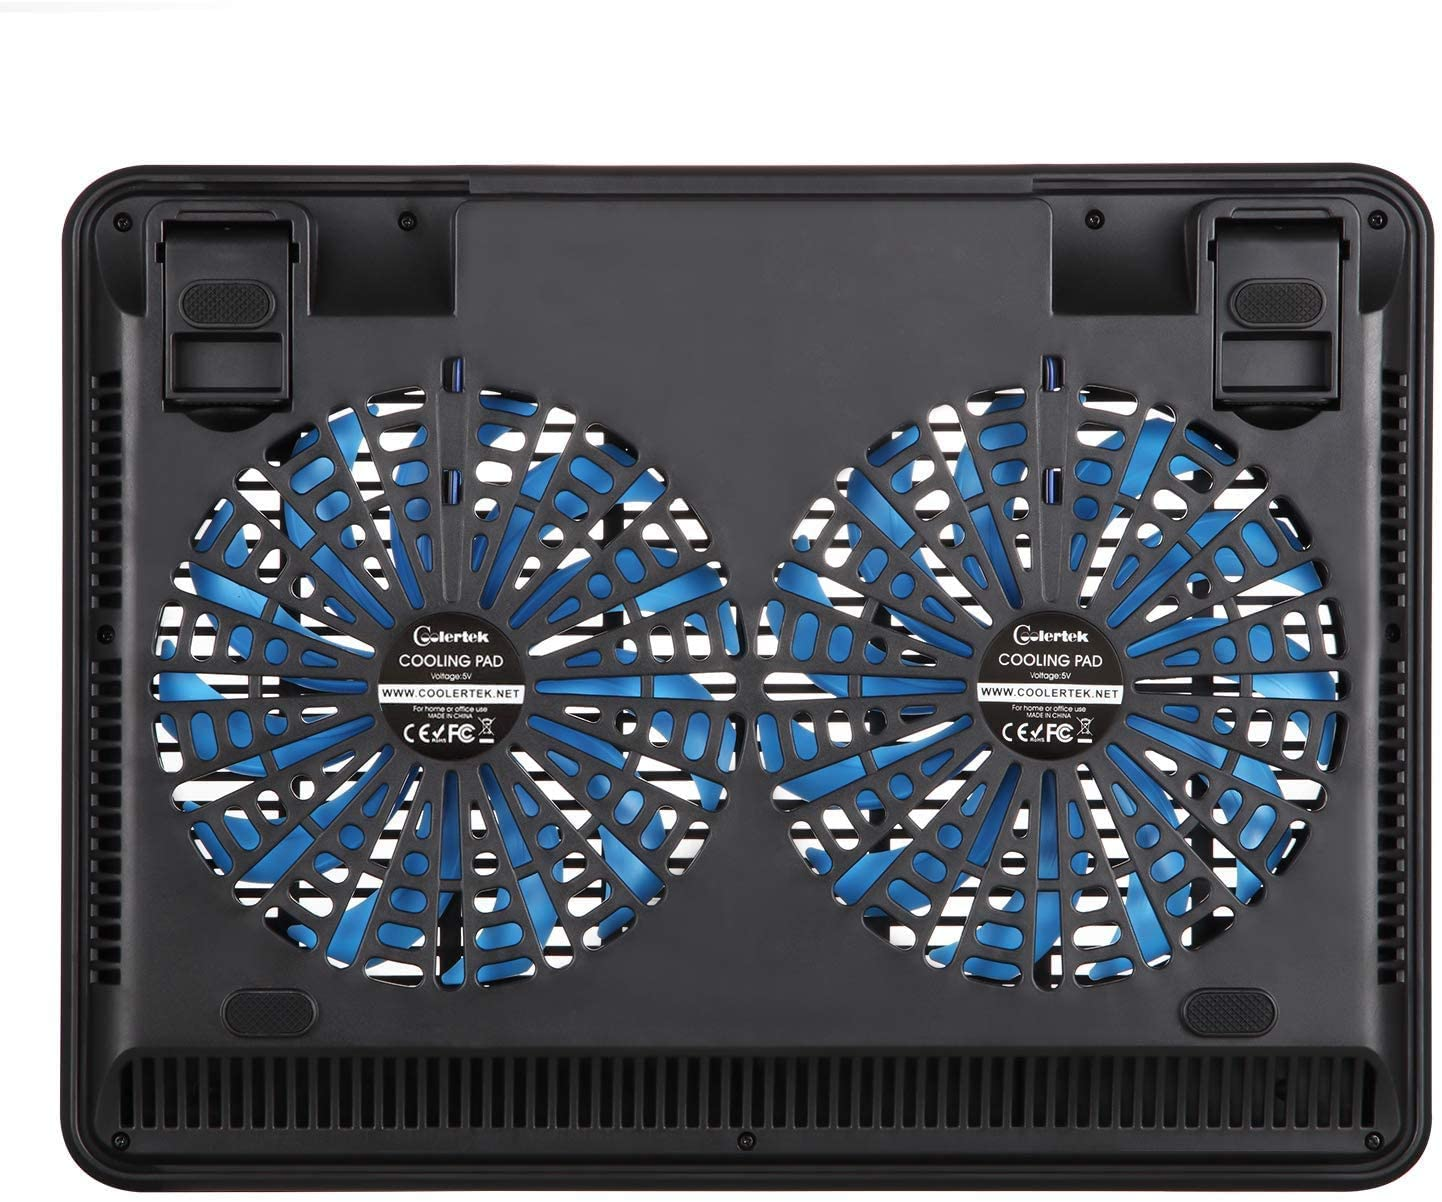 Color : Black Notebook Cooler Oversized Fan Quickly Dissipates Heat Six-Speed Bracket Adjustment Dual USB Interface Office//Game General Laptop Computer Stands Supports Laptops Under 18 Inches